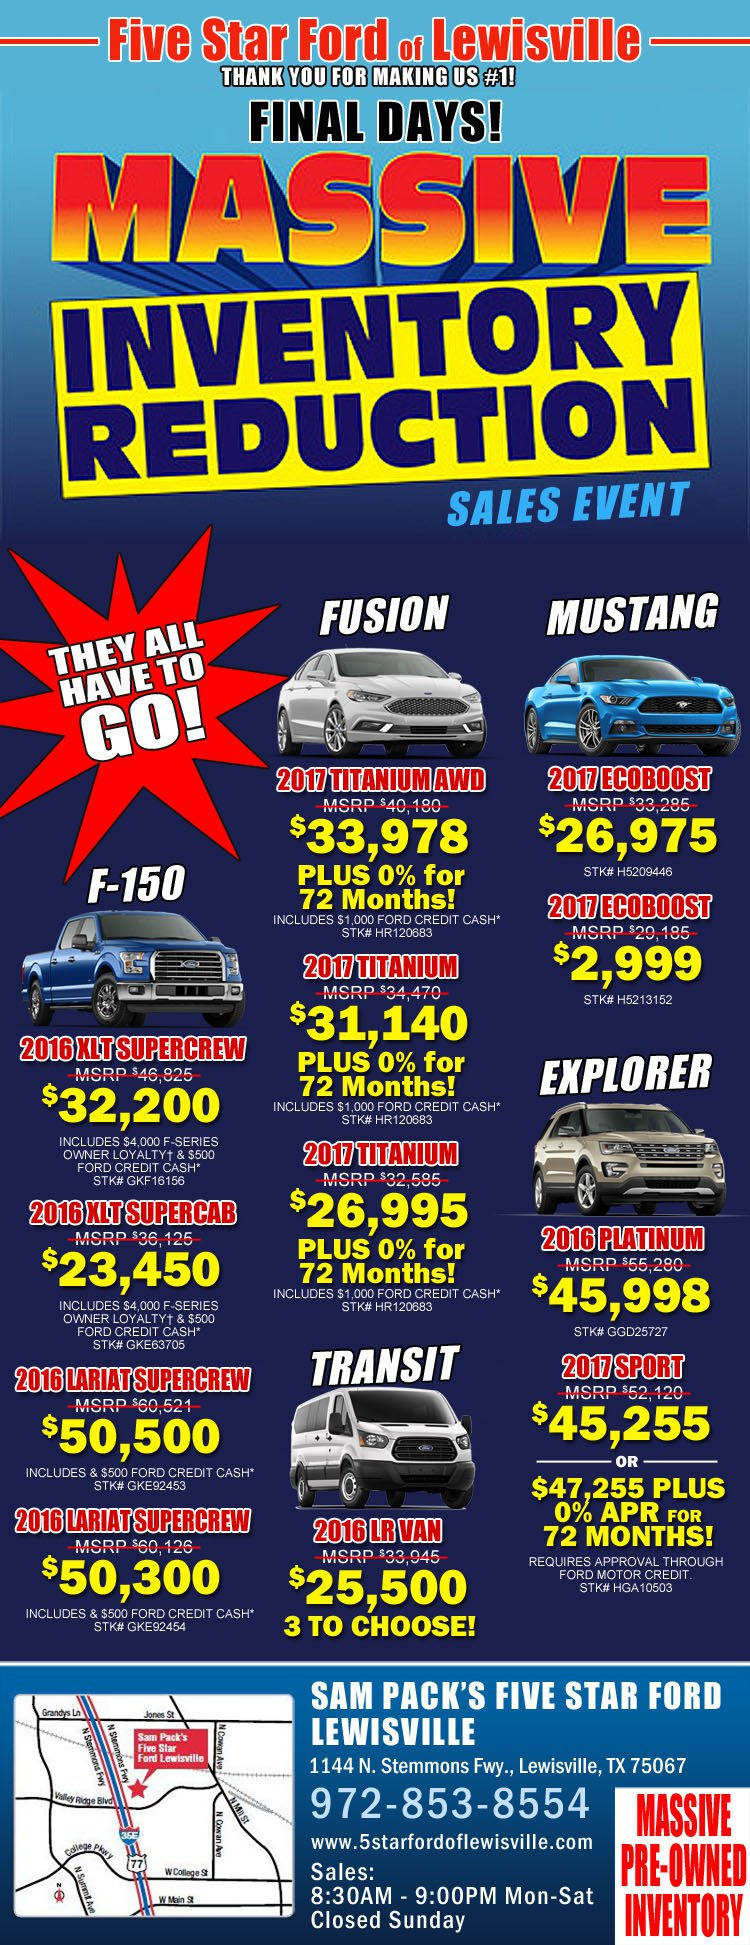 Ford owner service coupons and rebates autos post for Ford motor service coupons